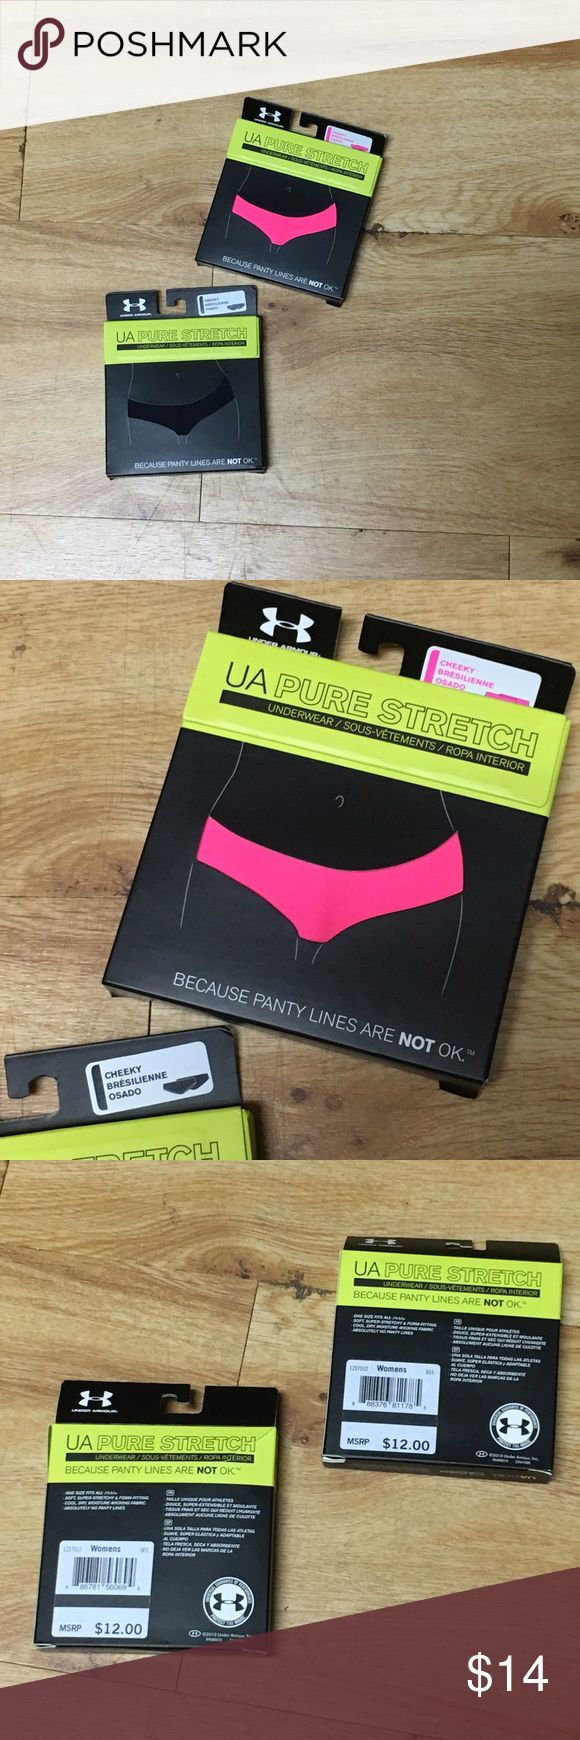 NIB under armour pure stretch seamless panties NIB under armour pure stretch panties. One size fits all. Super stretchy, form fitting, cool, dry, moisture-wicking fabric. No panty lines and are cheeky. Both pink and black are for sale. Black box has a tear on the back, but have never been worn. Price is negotiable and ships next day. Under Armour Intimates & Sleepwear Panties